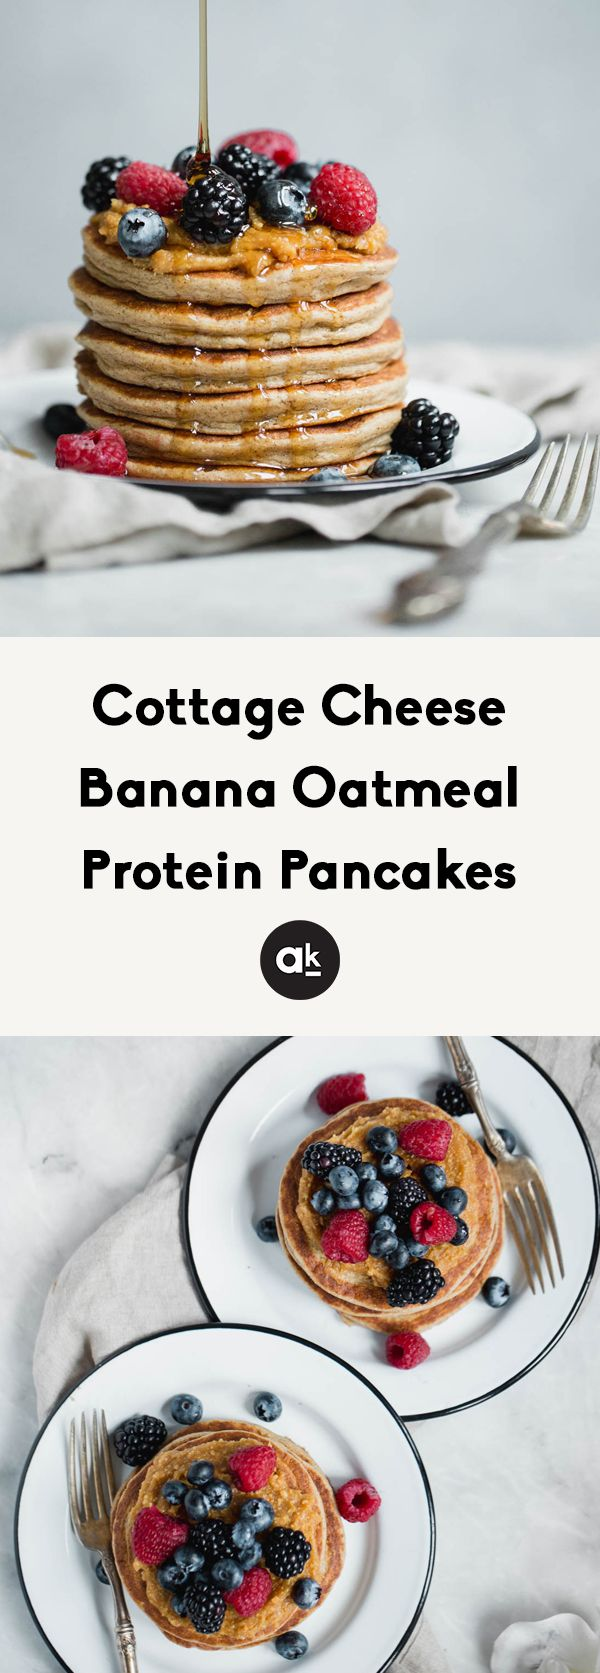 Cottage Cheese Banana Oatmeal Protein Pancakes Recipe In 2020 Oatmeal Protein Pancakes Banana Oatmeal Protein Pancakes